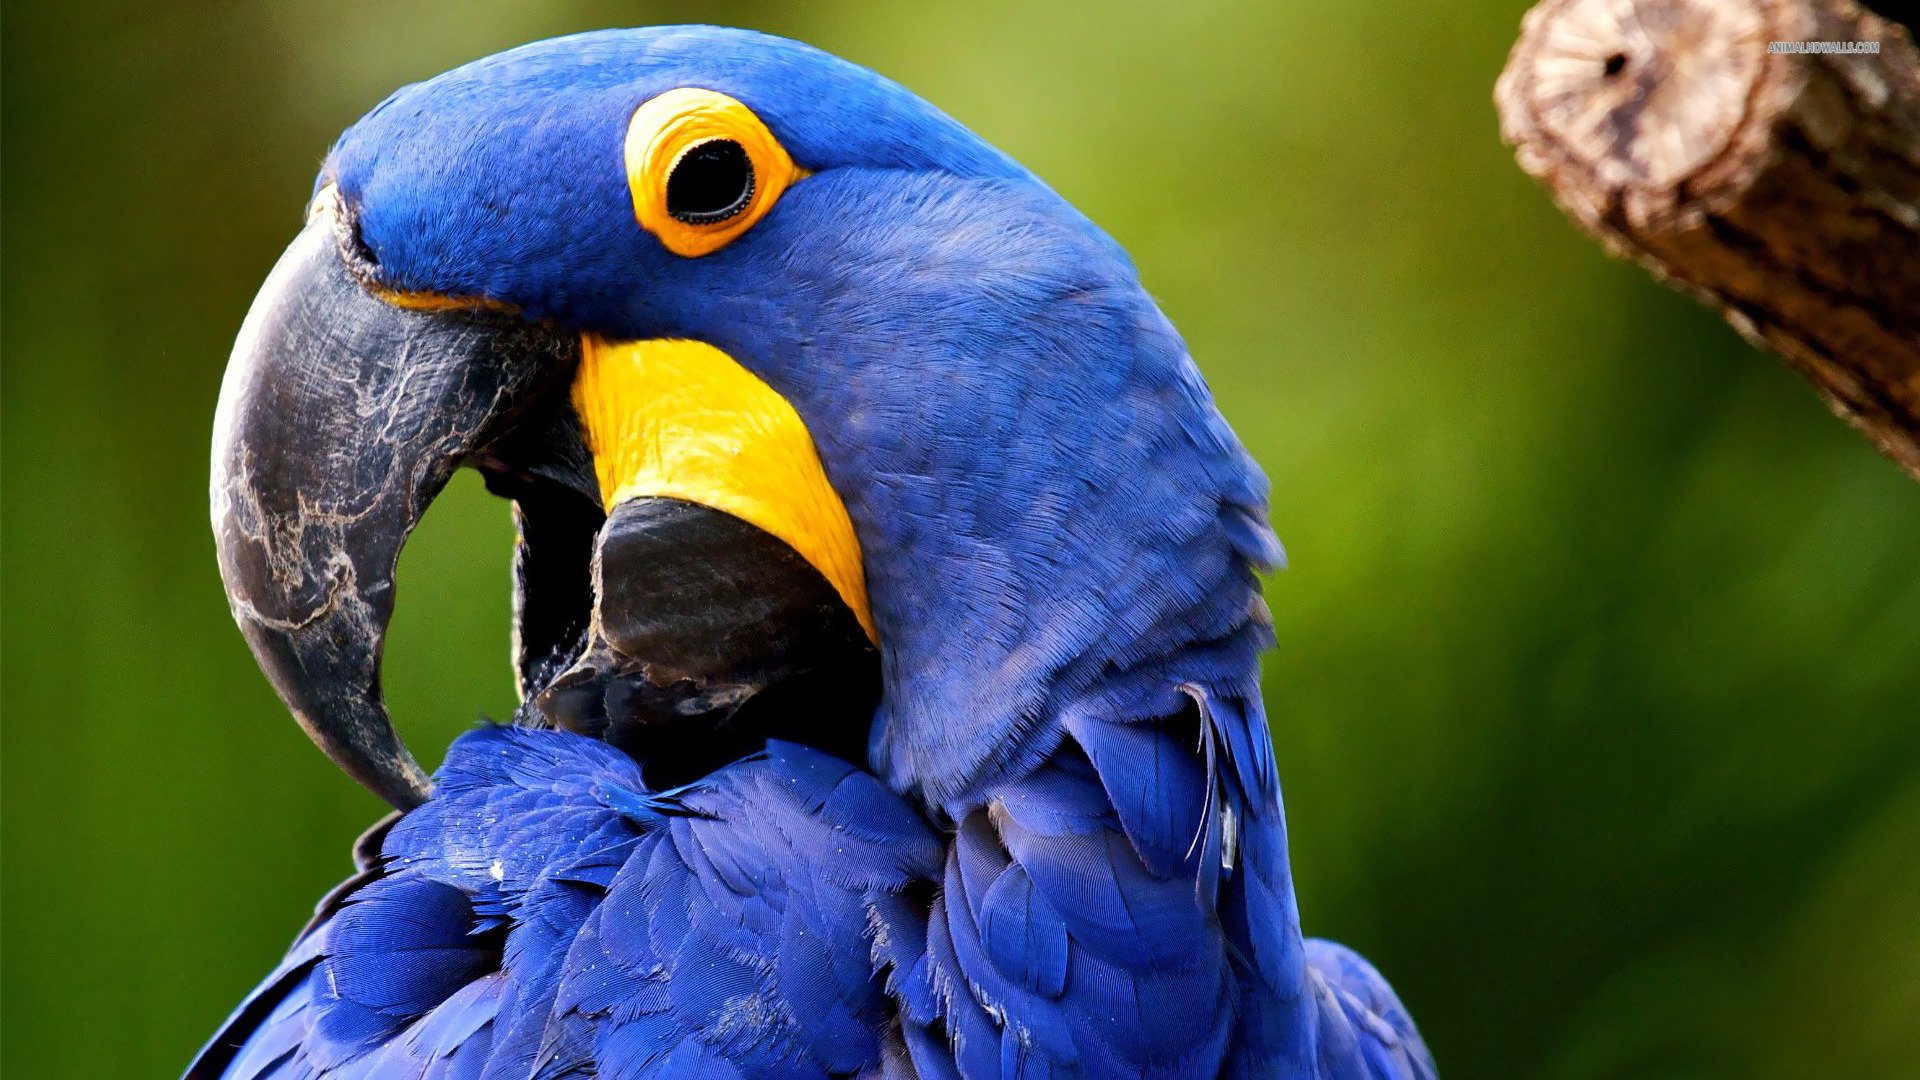 Hyacinth Macaw Backgrounds, Compatible - PC, Mobile, Gadgets| 1920x1080 px